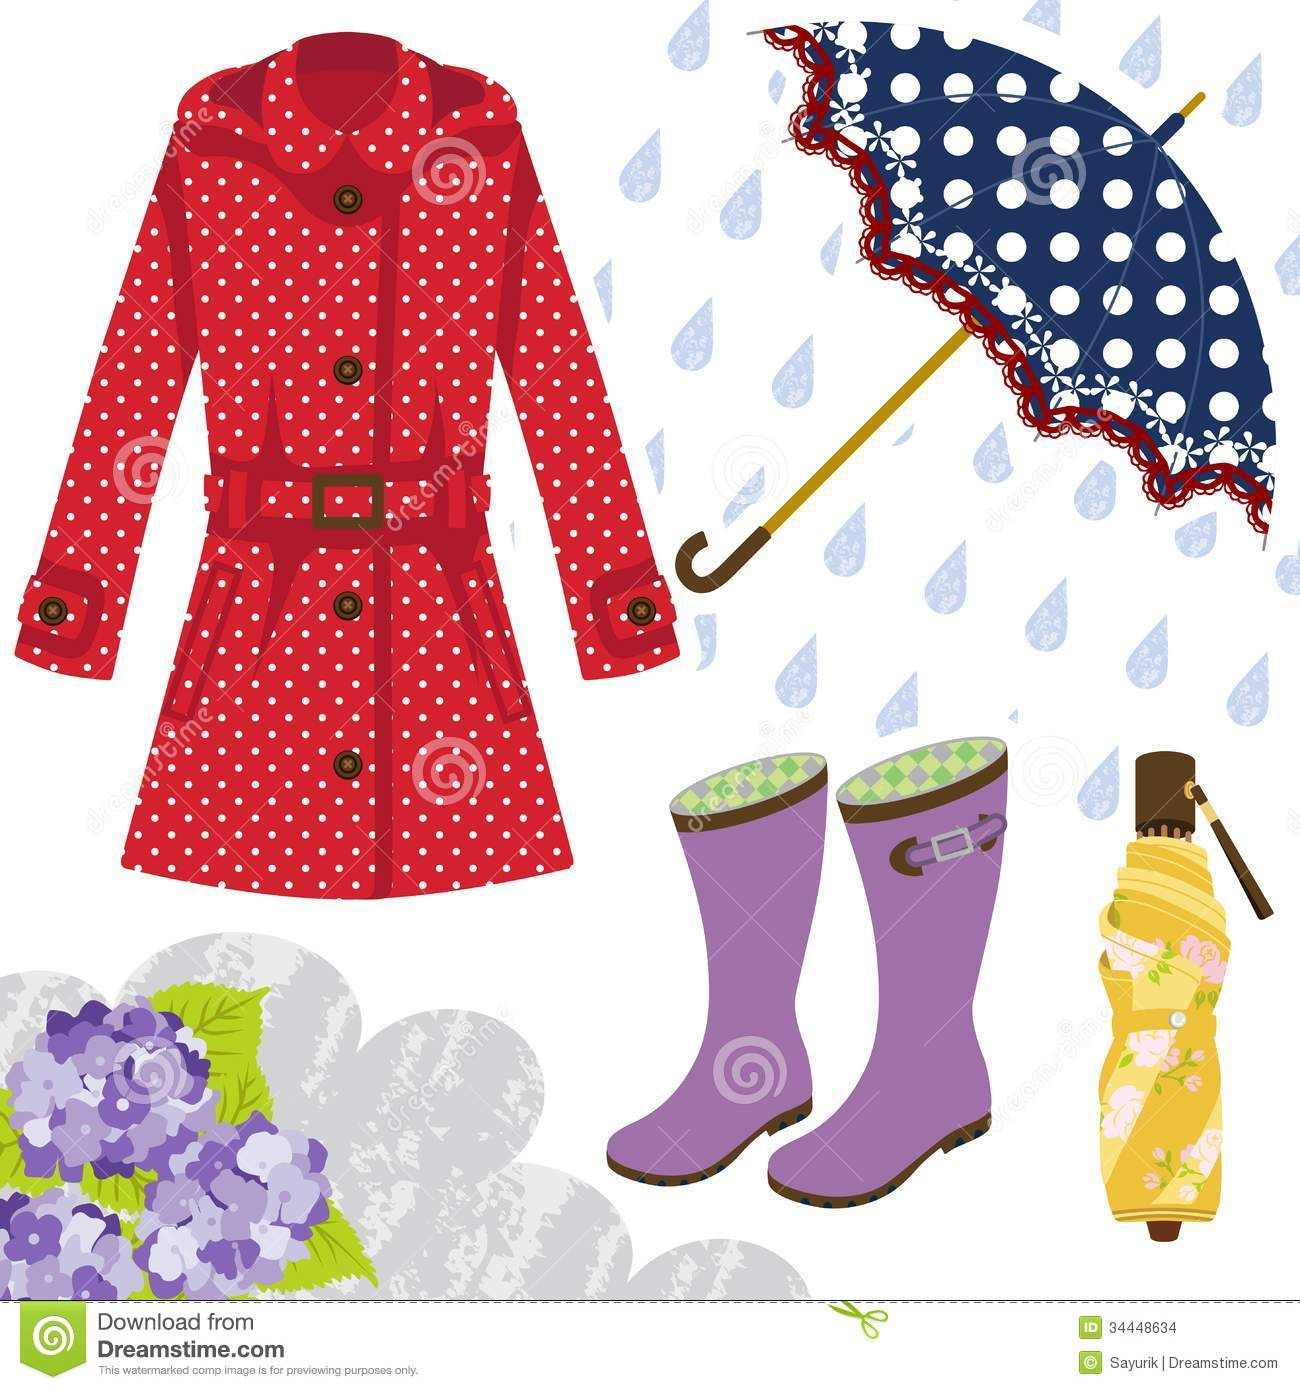 Rainy season clothes clipart clipart freeuse Pin by connie taylor on umbrella-not just for rain | Rain ... clipart freeuse